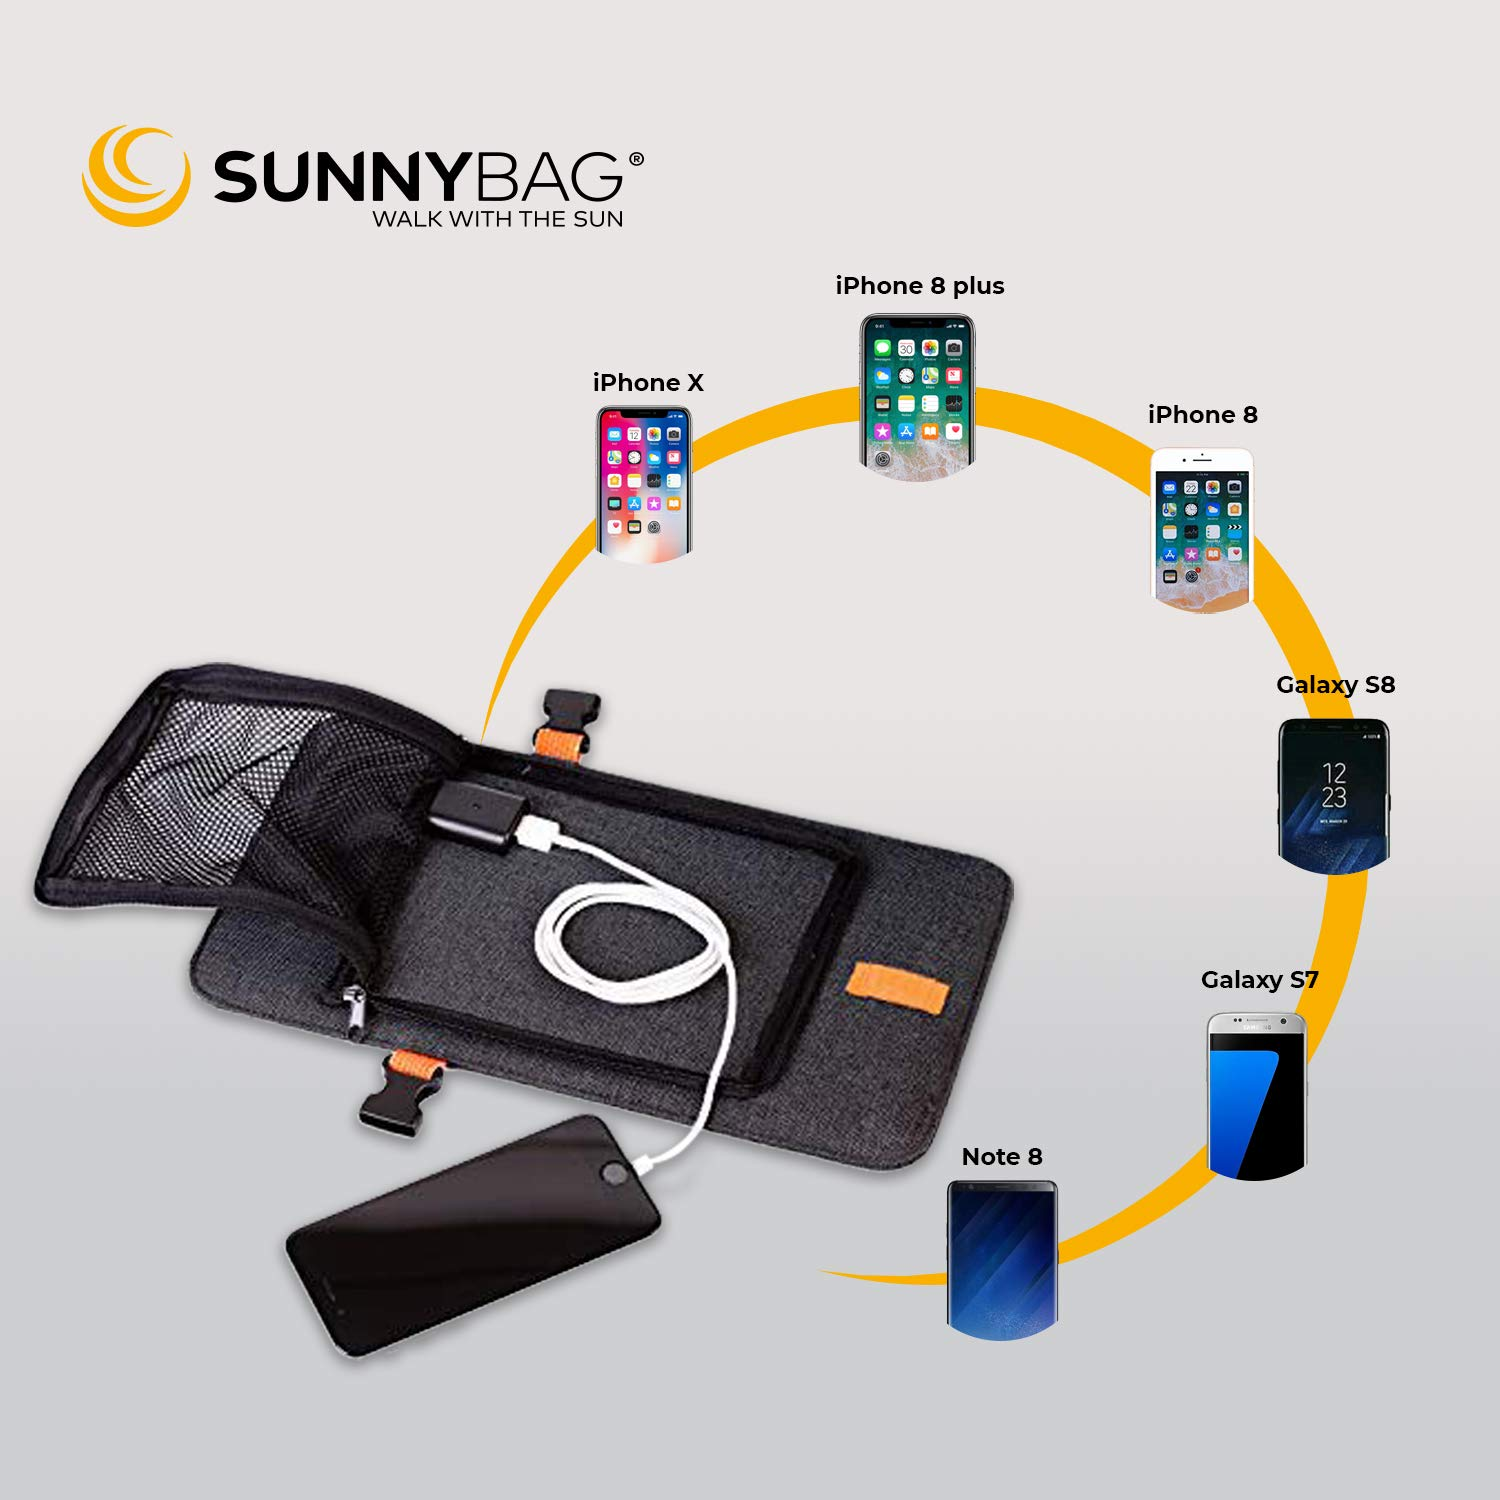 Gray//Black 15l Volume and 15/'/' Laptop Compartment Worlds Strongest Solar Panel for Charging Smartphones and All USB-Devices on The go Sunnybag Explorer+ Solar Backpack